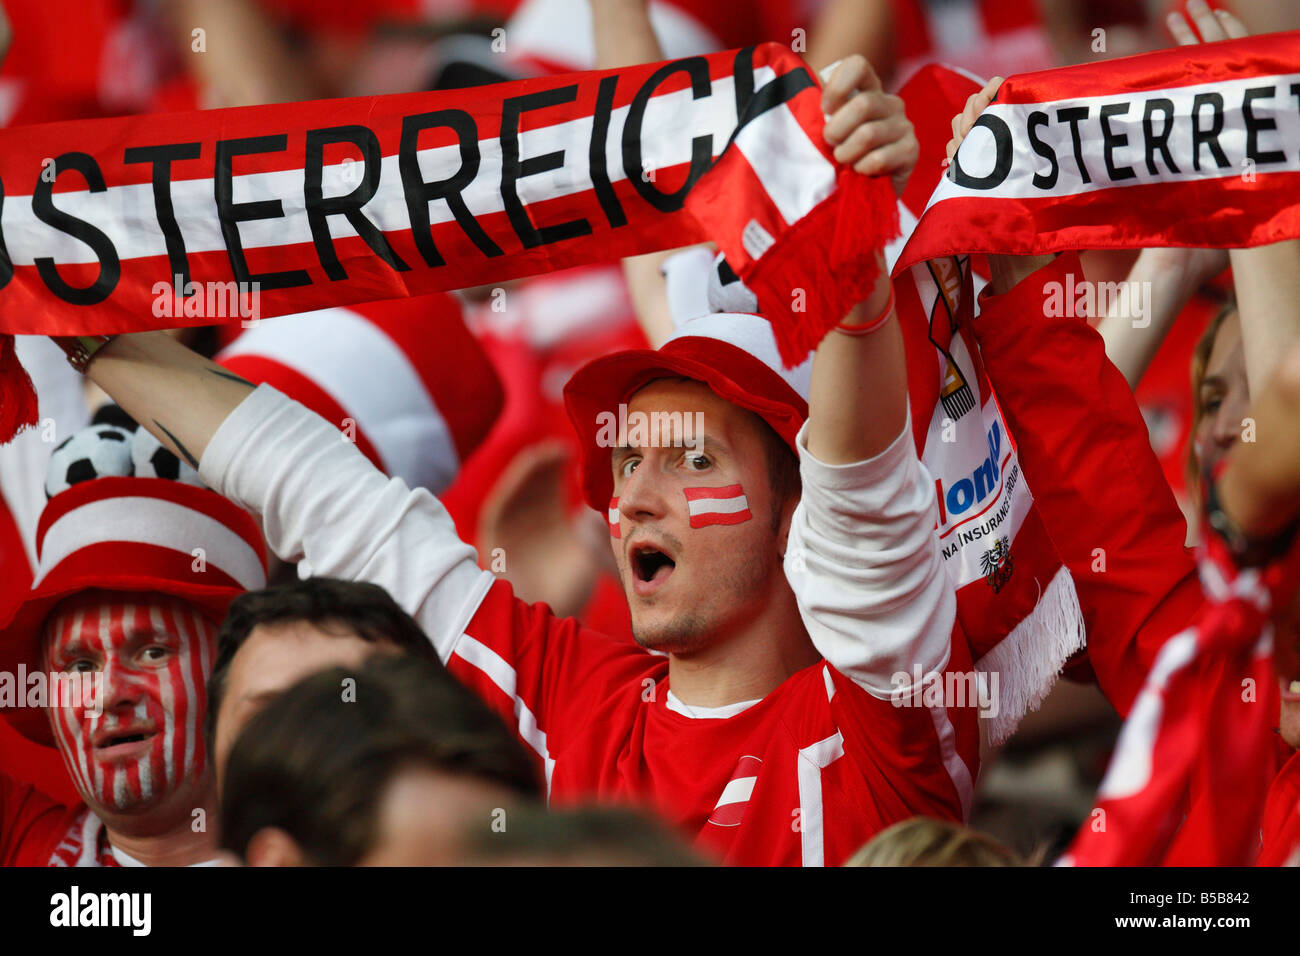 Austrian supporters cheer their team prior to a UEFA Euro 2008 group stage against Germany June 16, 2008. - Stock Image